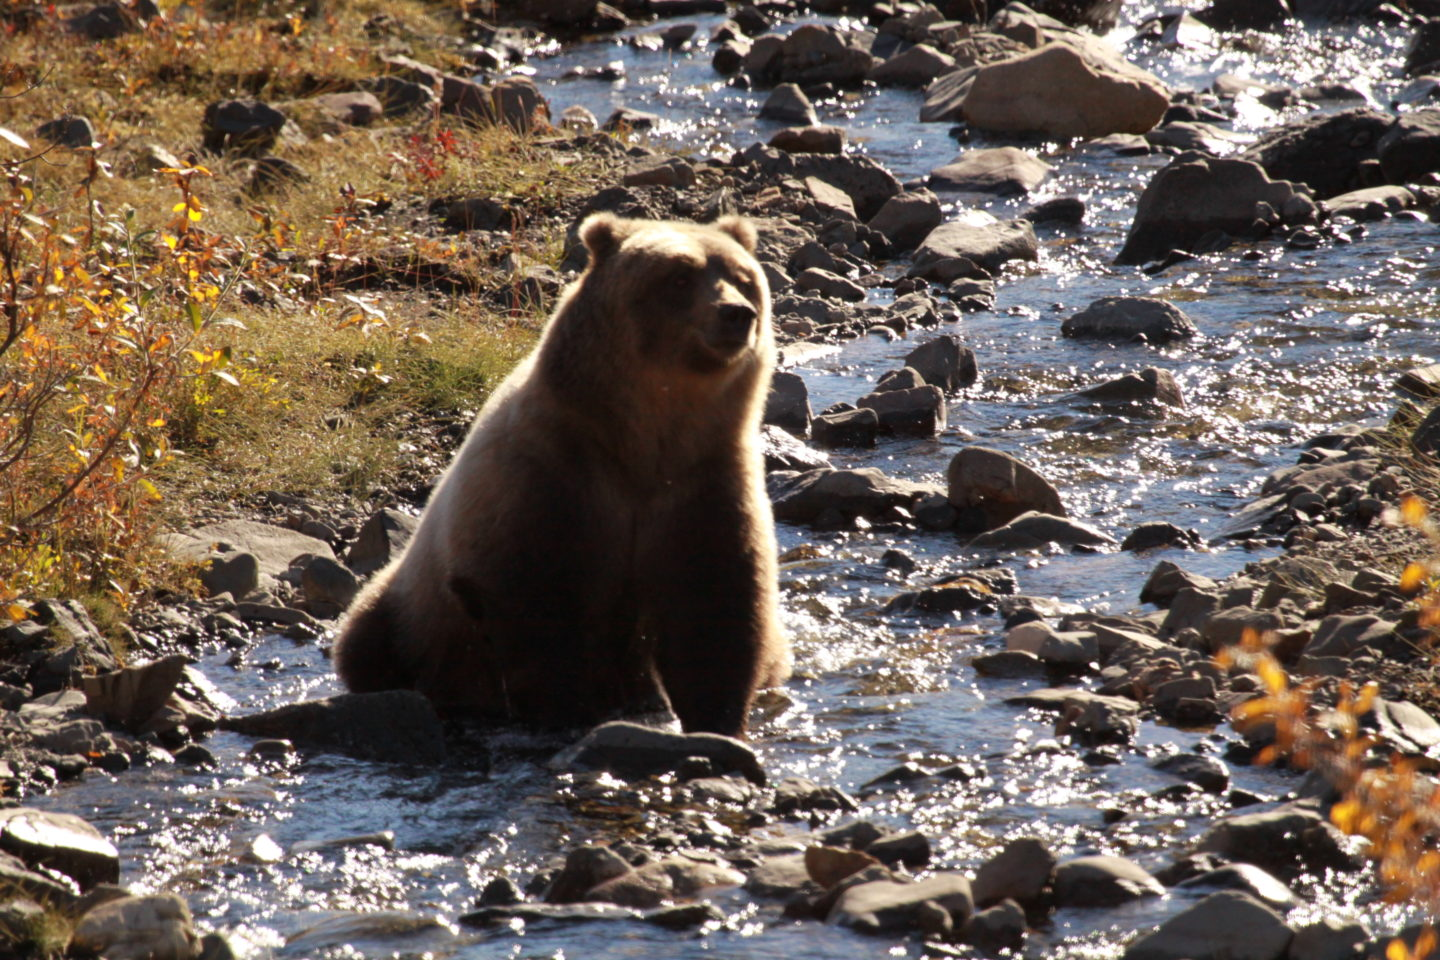 Bear in Mount Denali National Park during our Alaska Cruise with Princess Cruises